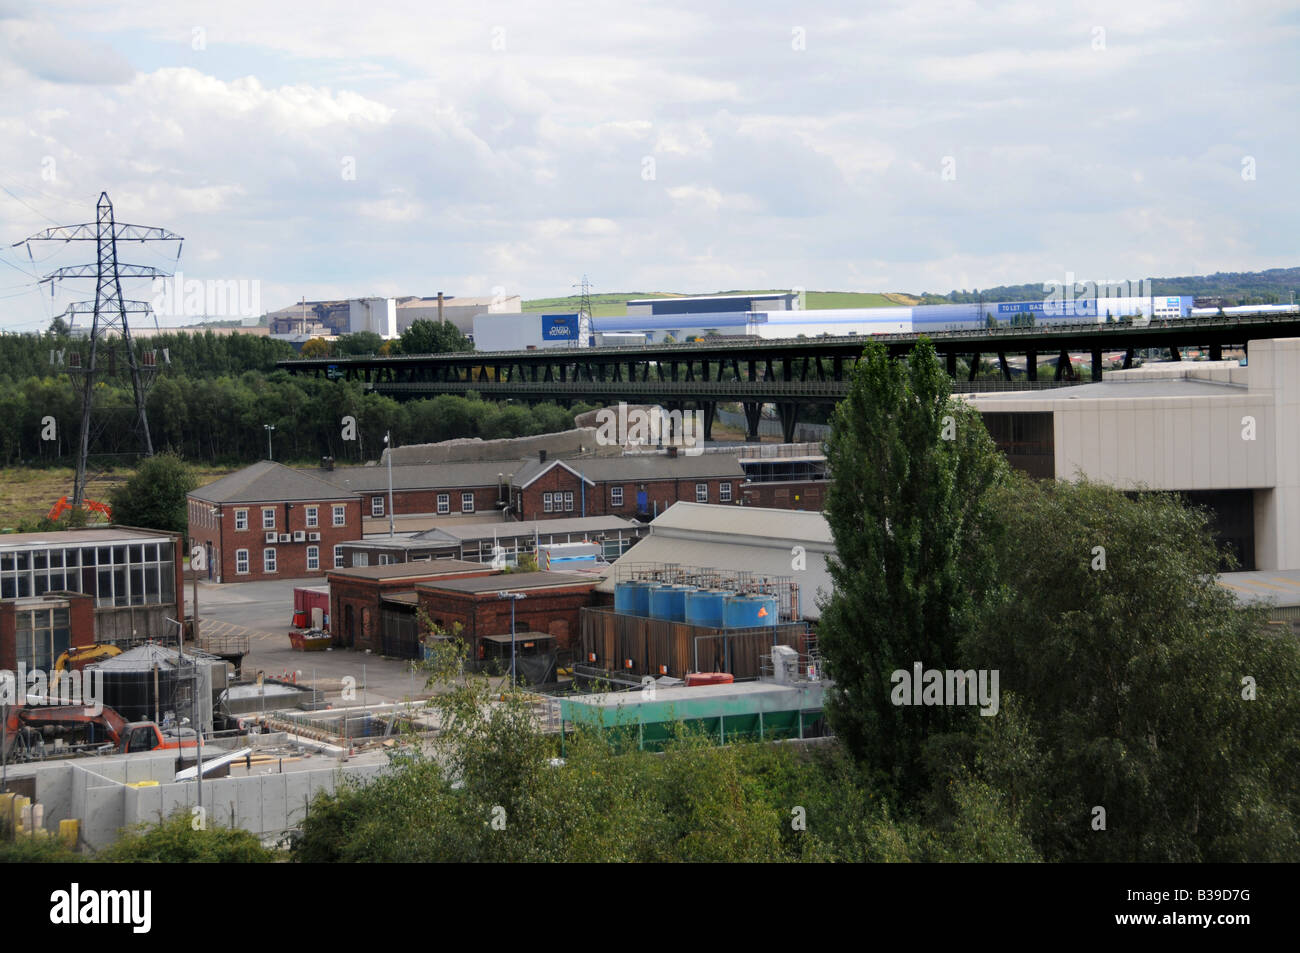 The remains of the Tinsley Cooling Towers 12 hours after the Towers were demolished on 24 August 2008, Sheffield, - Stock Image